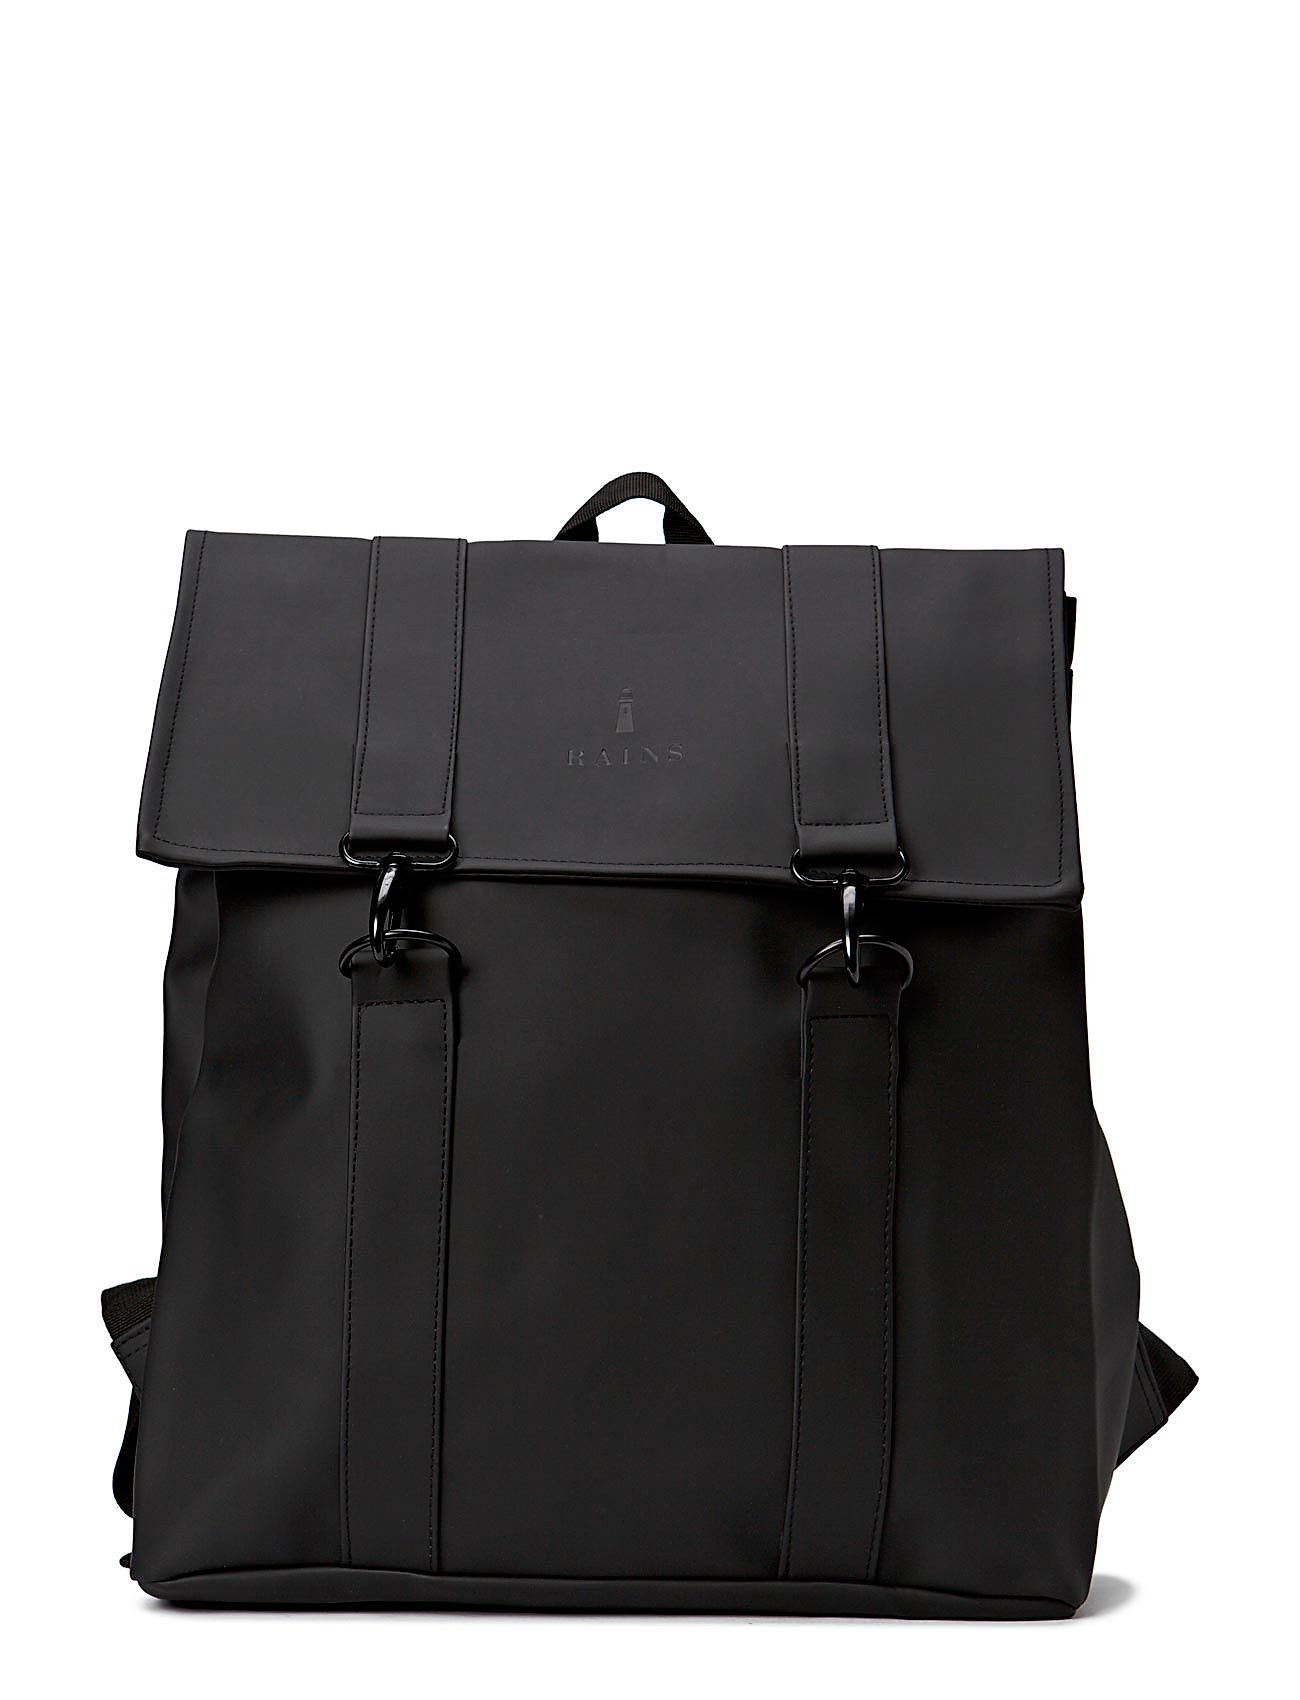 Rains Msn Bag - 01 Black